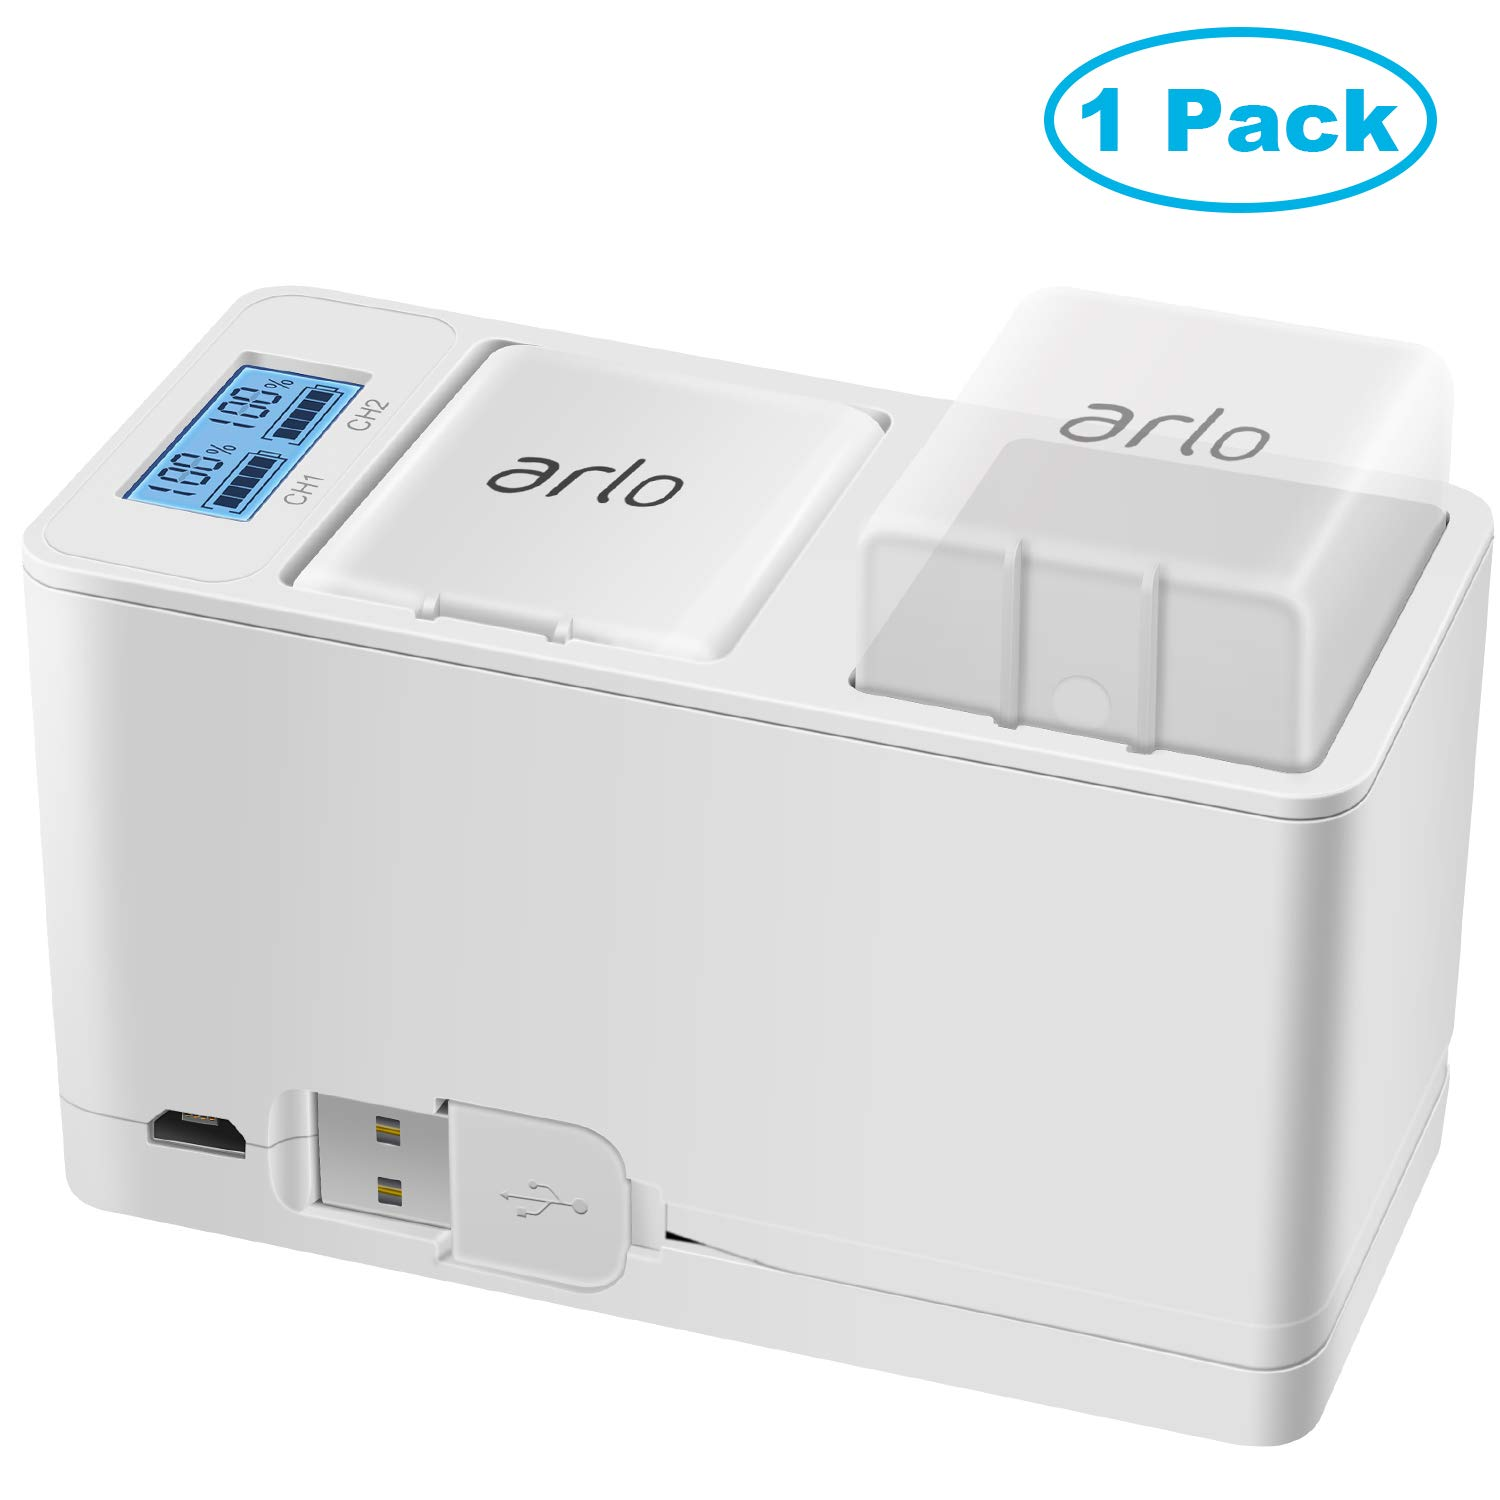 Feirsh Dual Charging Station and 1- Pack 2440mAh Rechargeable Battery for Arlo Pro/Pro 2 Camera